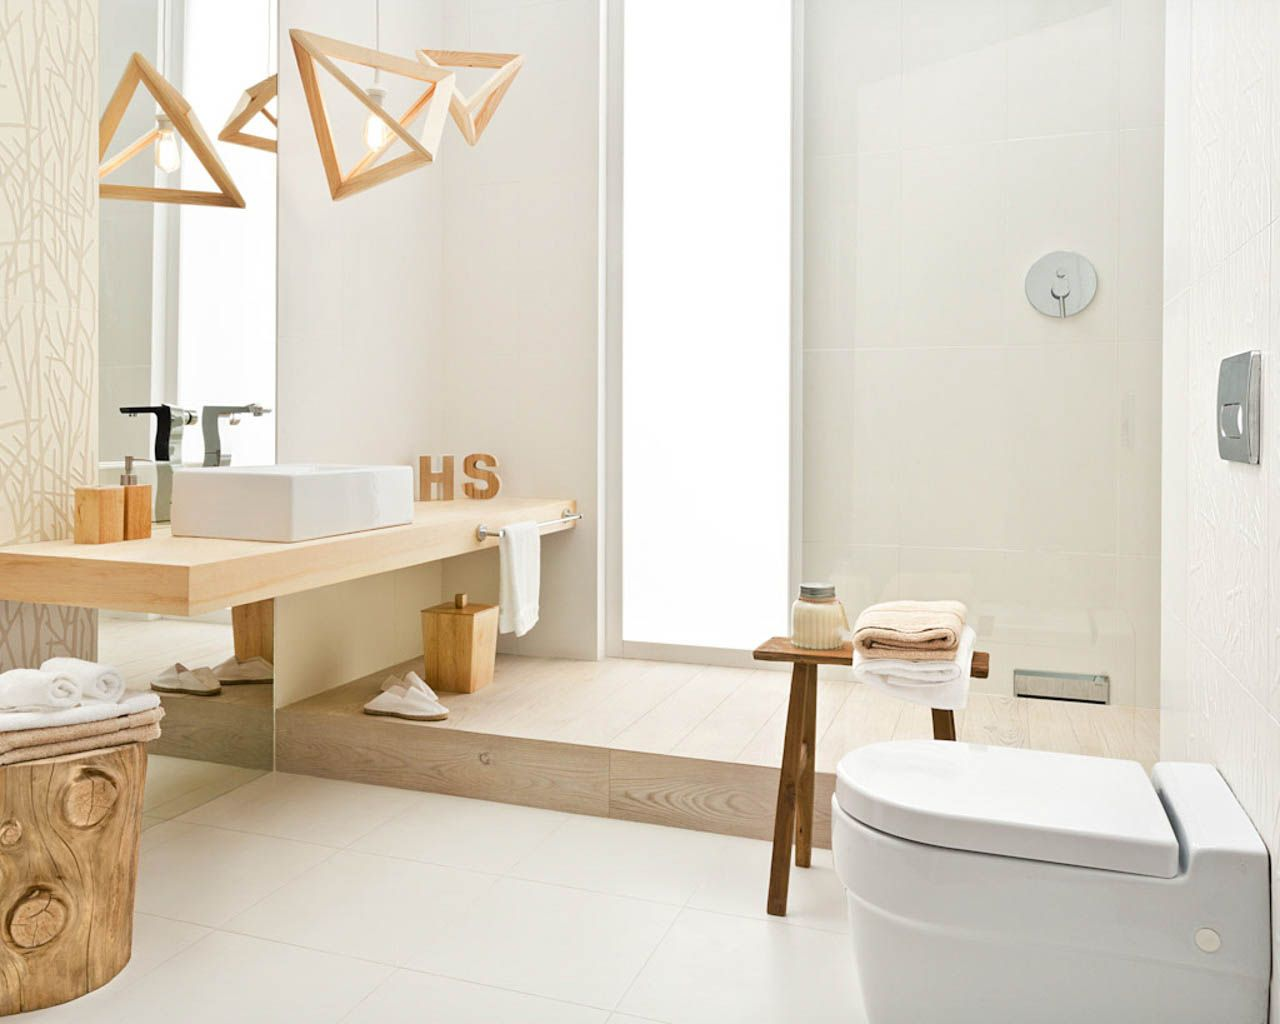 White Bathroom In A Hygge Style With Floral Motif And